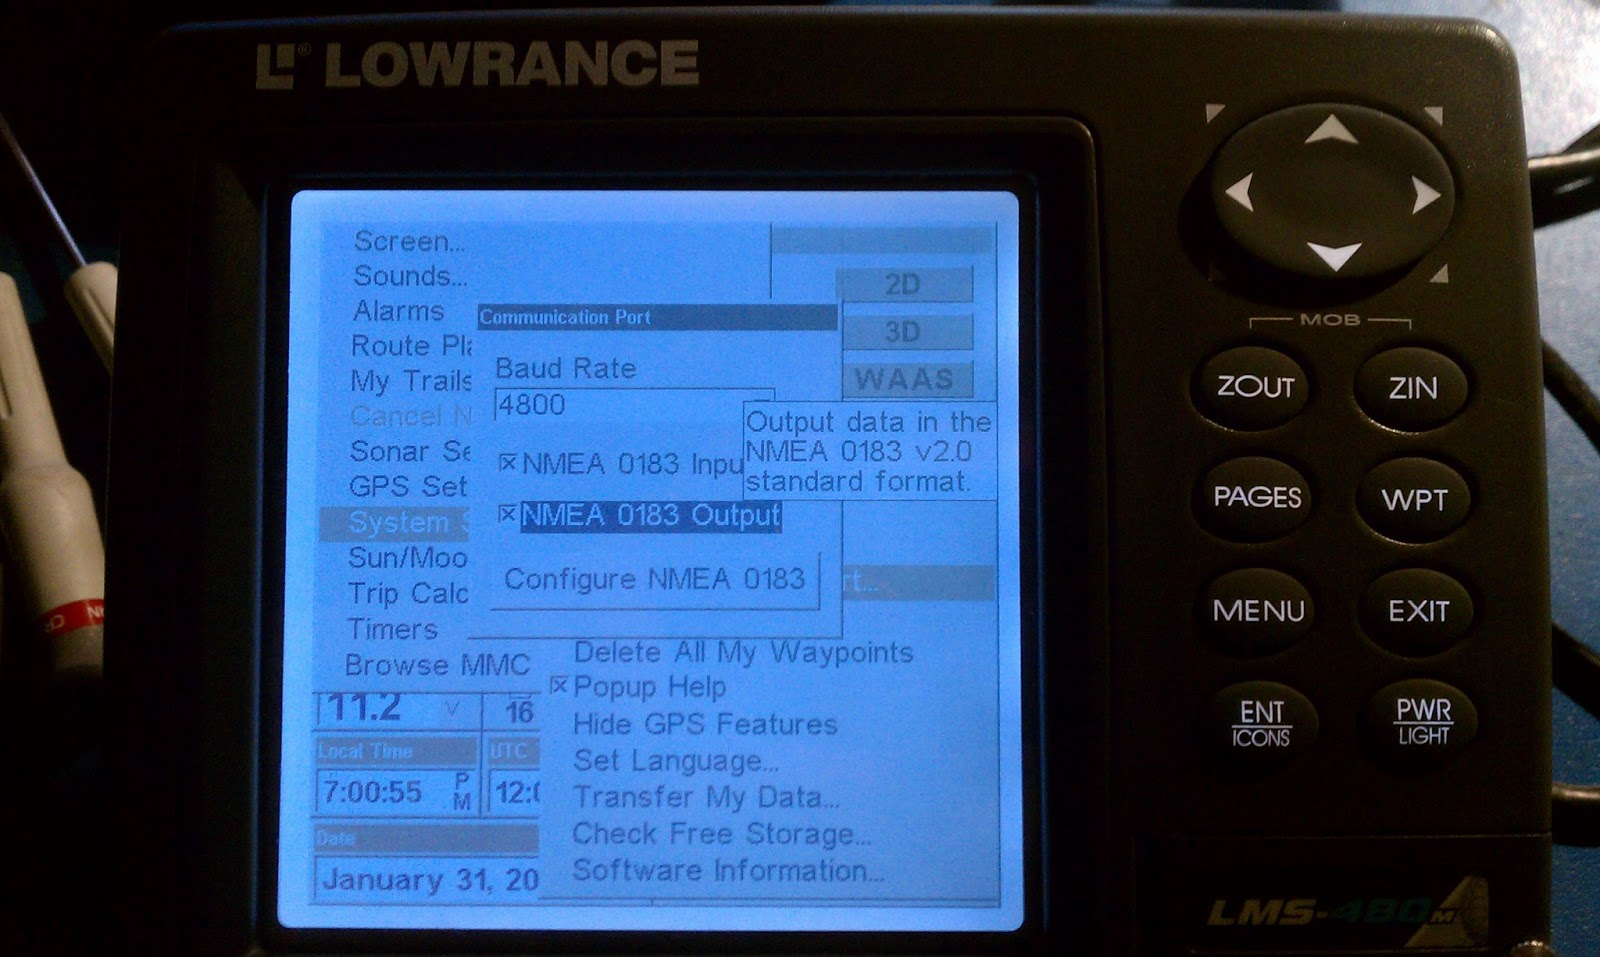 hight resolution of lowrance gps antenna wiring diagram better wiring diagram online lowrance hds troubleshooting lowrance nmea 0183 wiring diagram free download